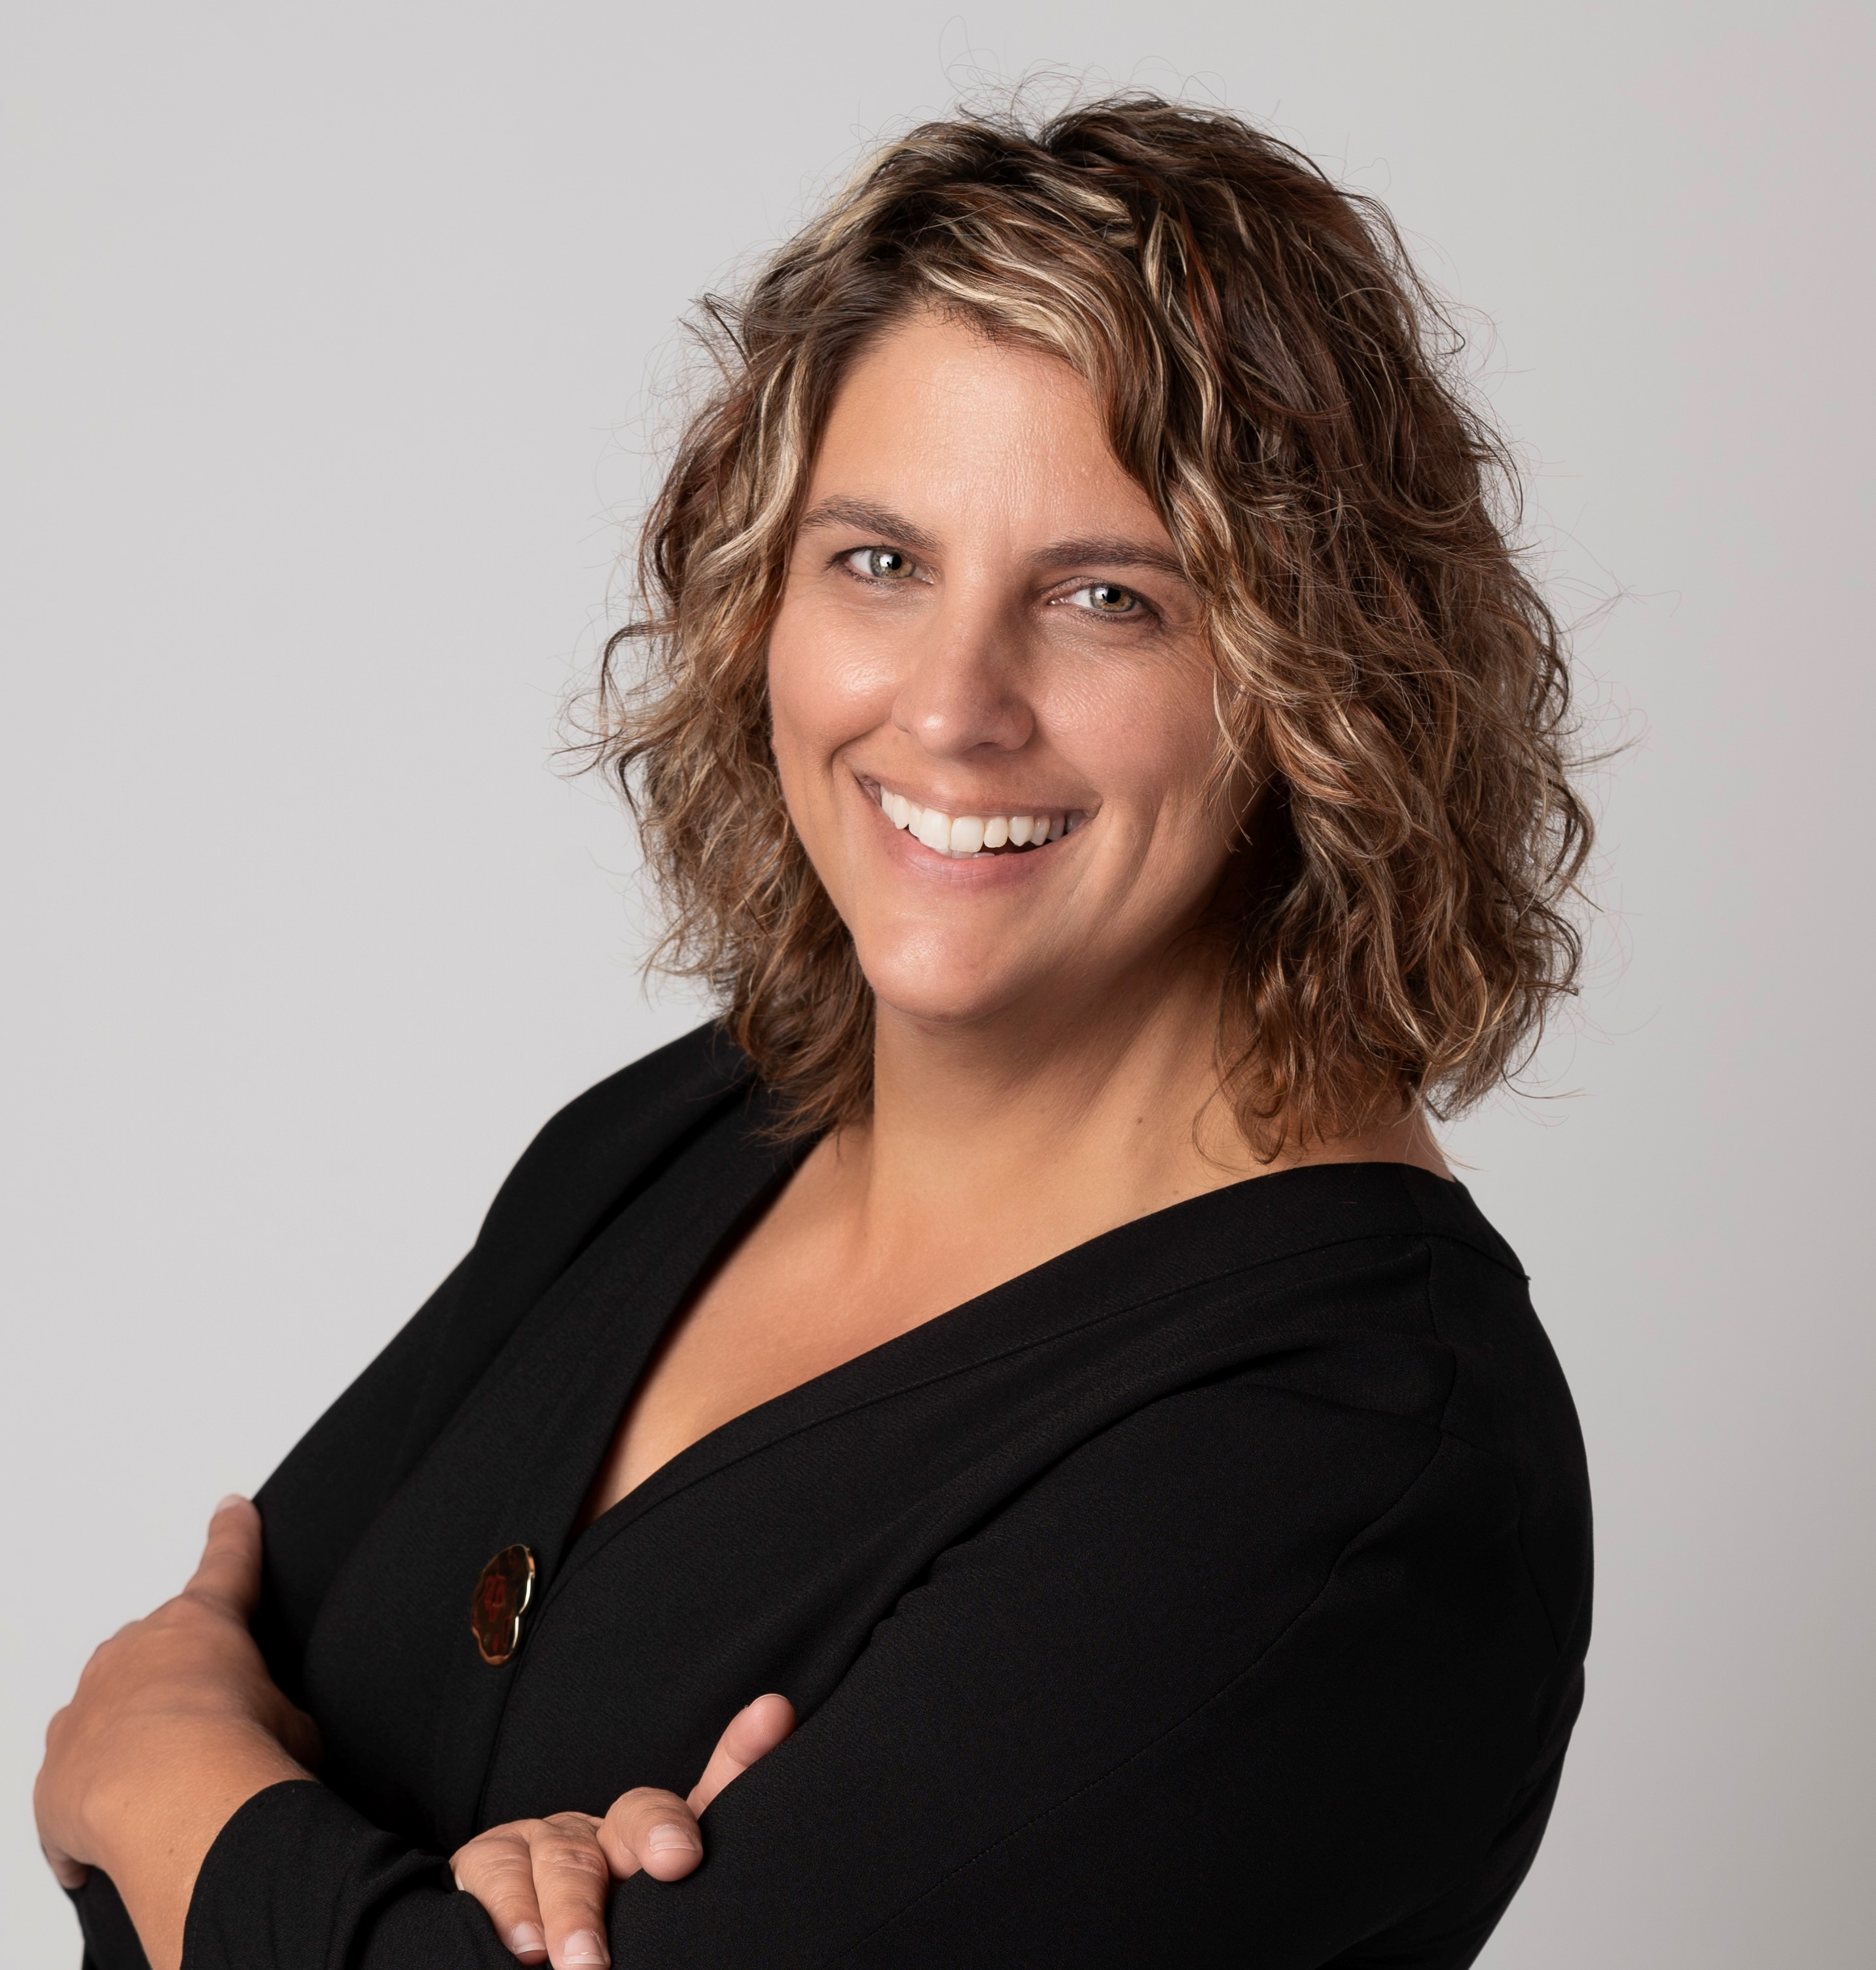 Carrin Byk Real Estate Agent in Clarkston, Michigan Earns SRS (Seller Representative Specialist) Designation and Takes Her Career to the Next Level